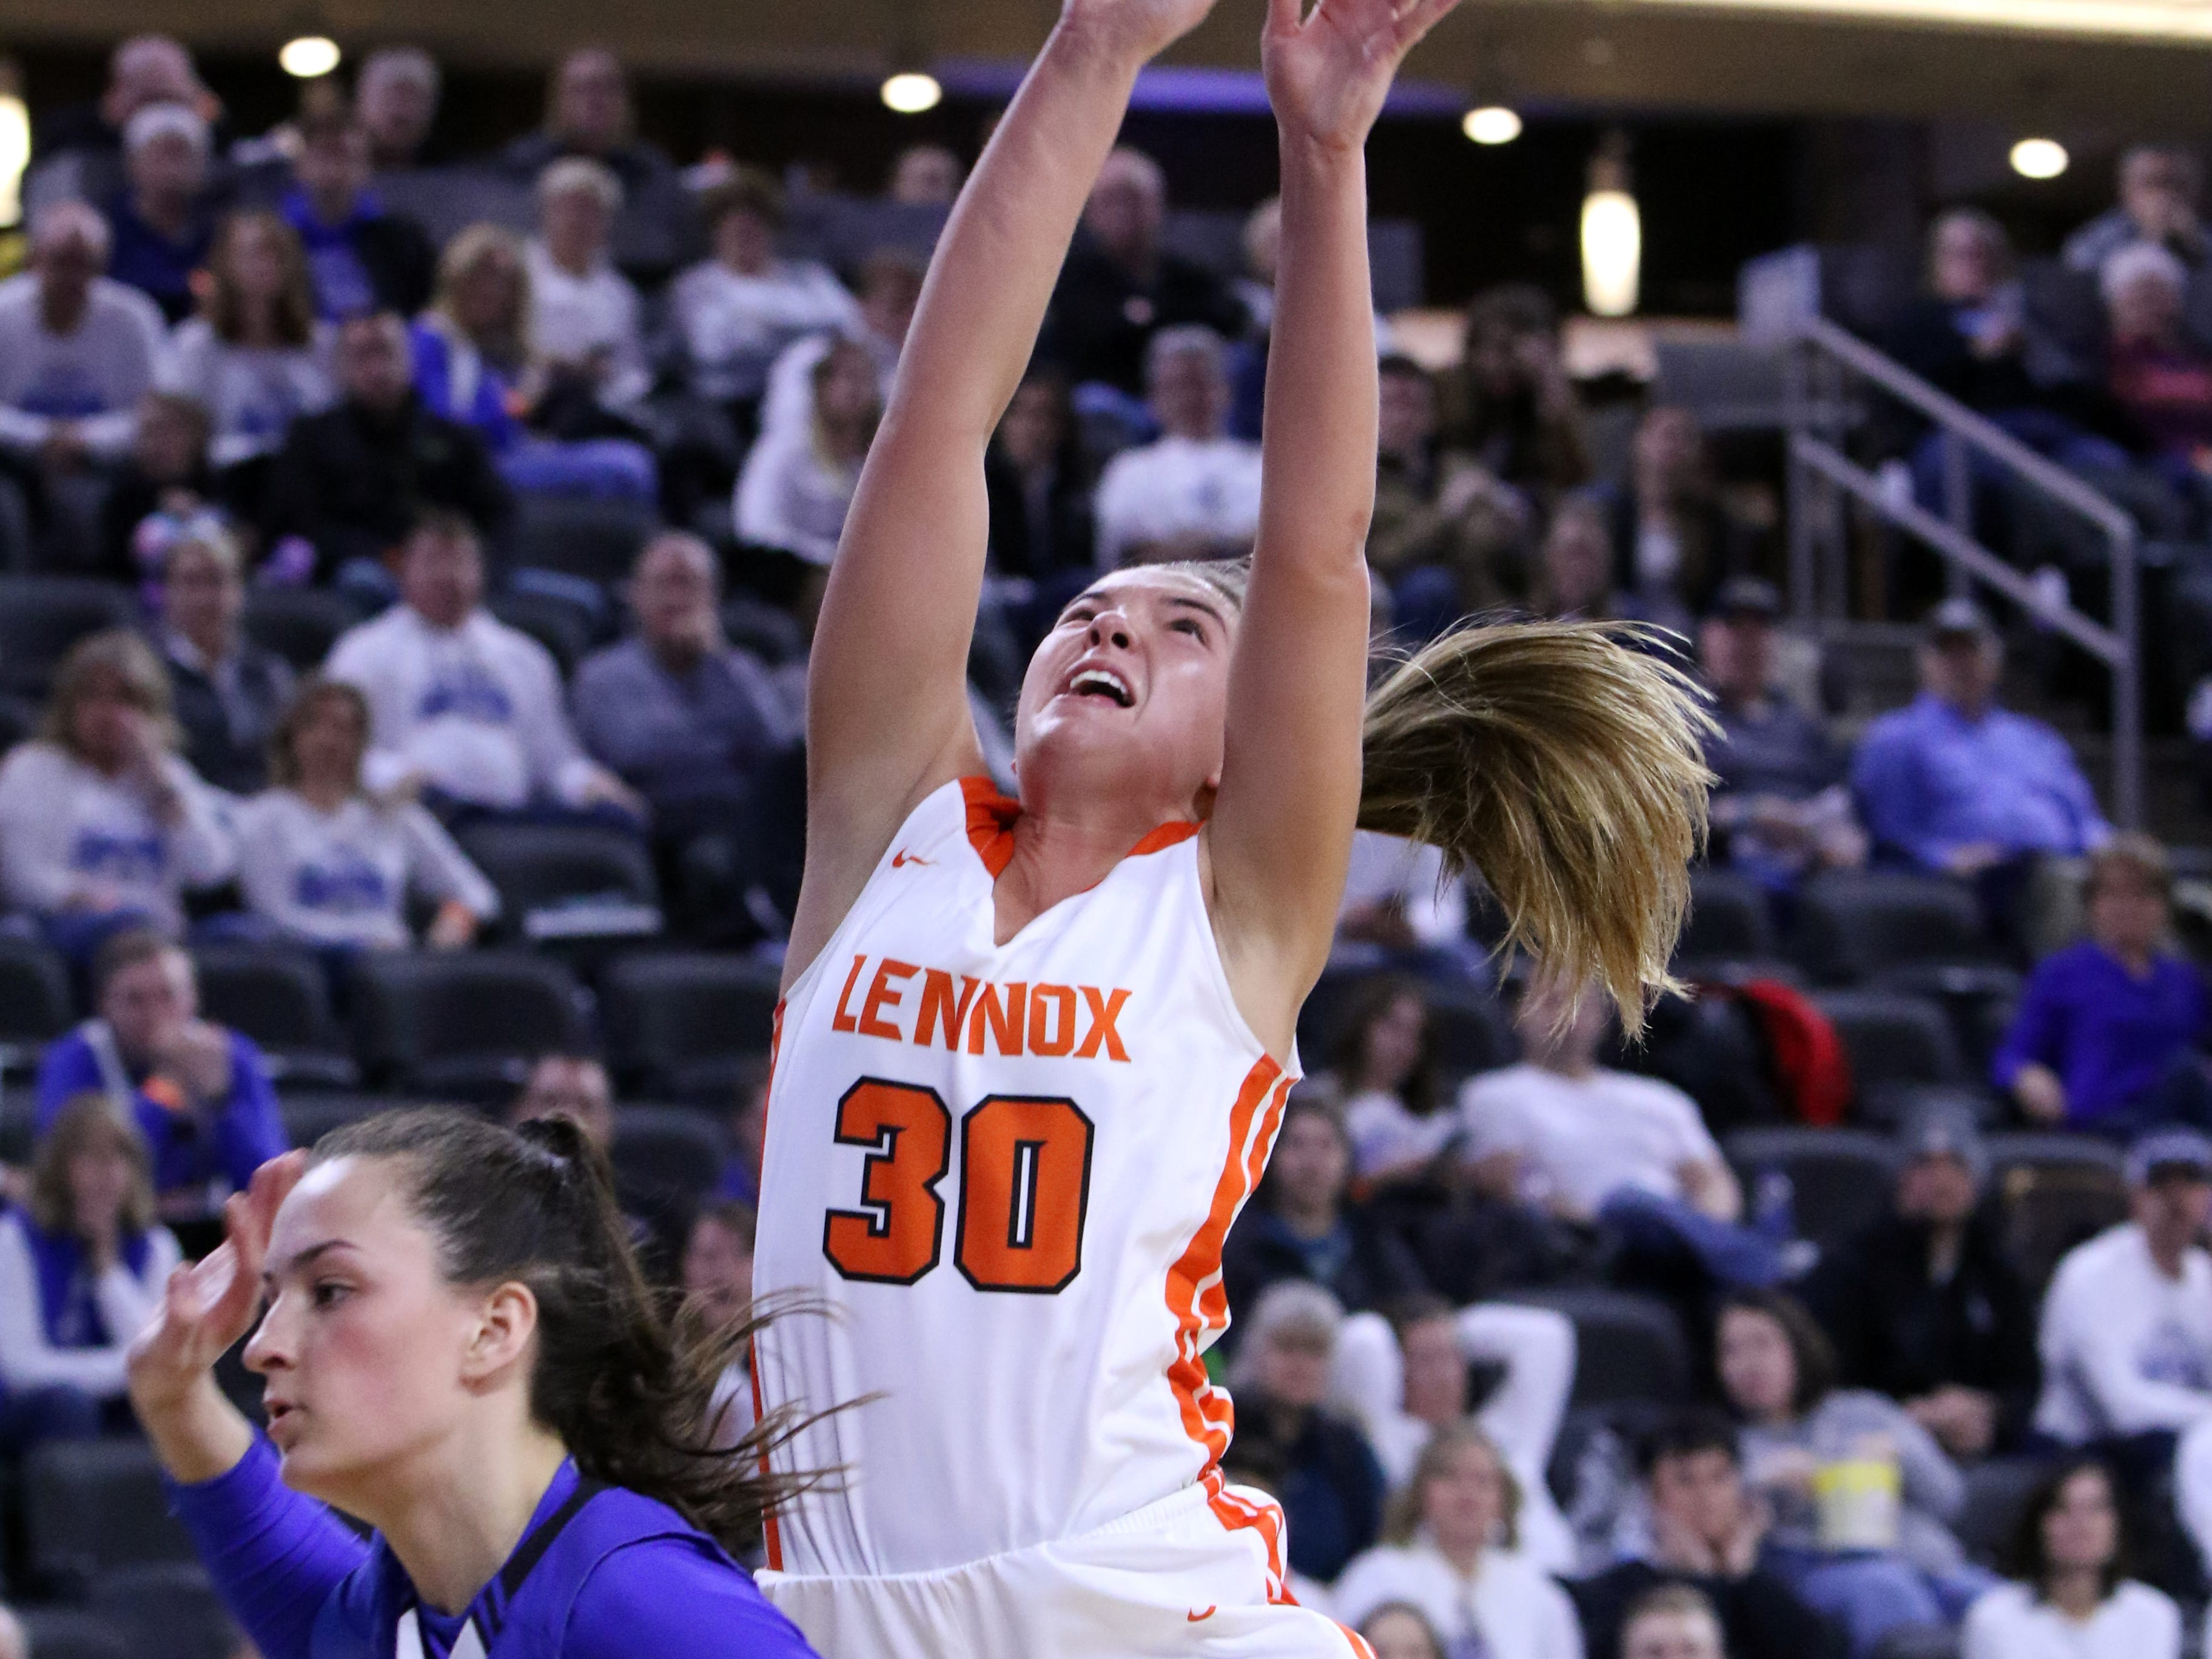 Rianna Fillipi of Lennox is fouled as she gets off a shot by Ciara Benson of St Thomas More during Thursday's game at the Premier Center in Sioux Falls.